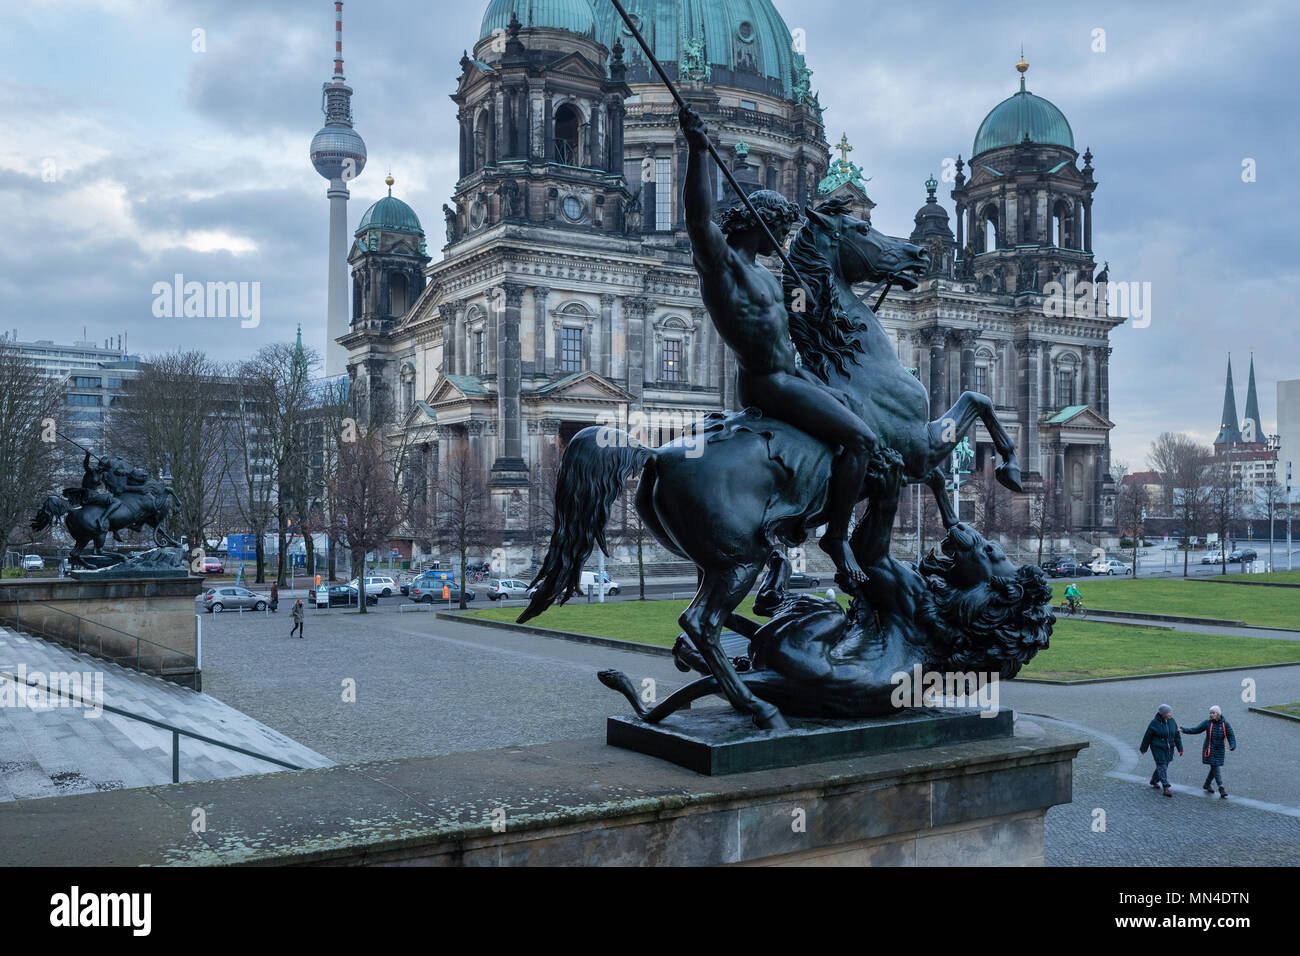 The Berliner Dom, Fernsehturm and Lustgarten from the steps of the Altes Museum, Mitte, Berlin, Germany, - Stock Image